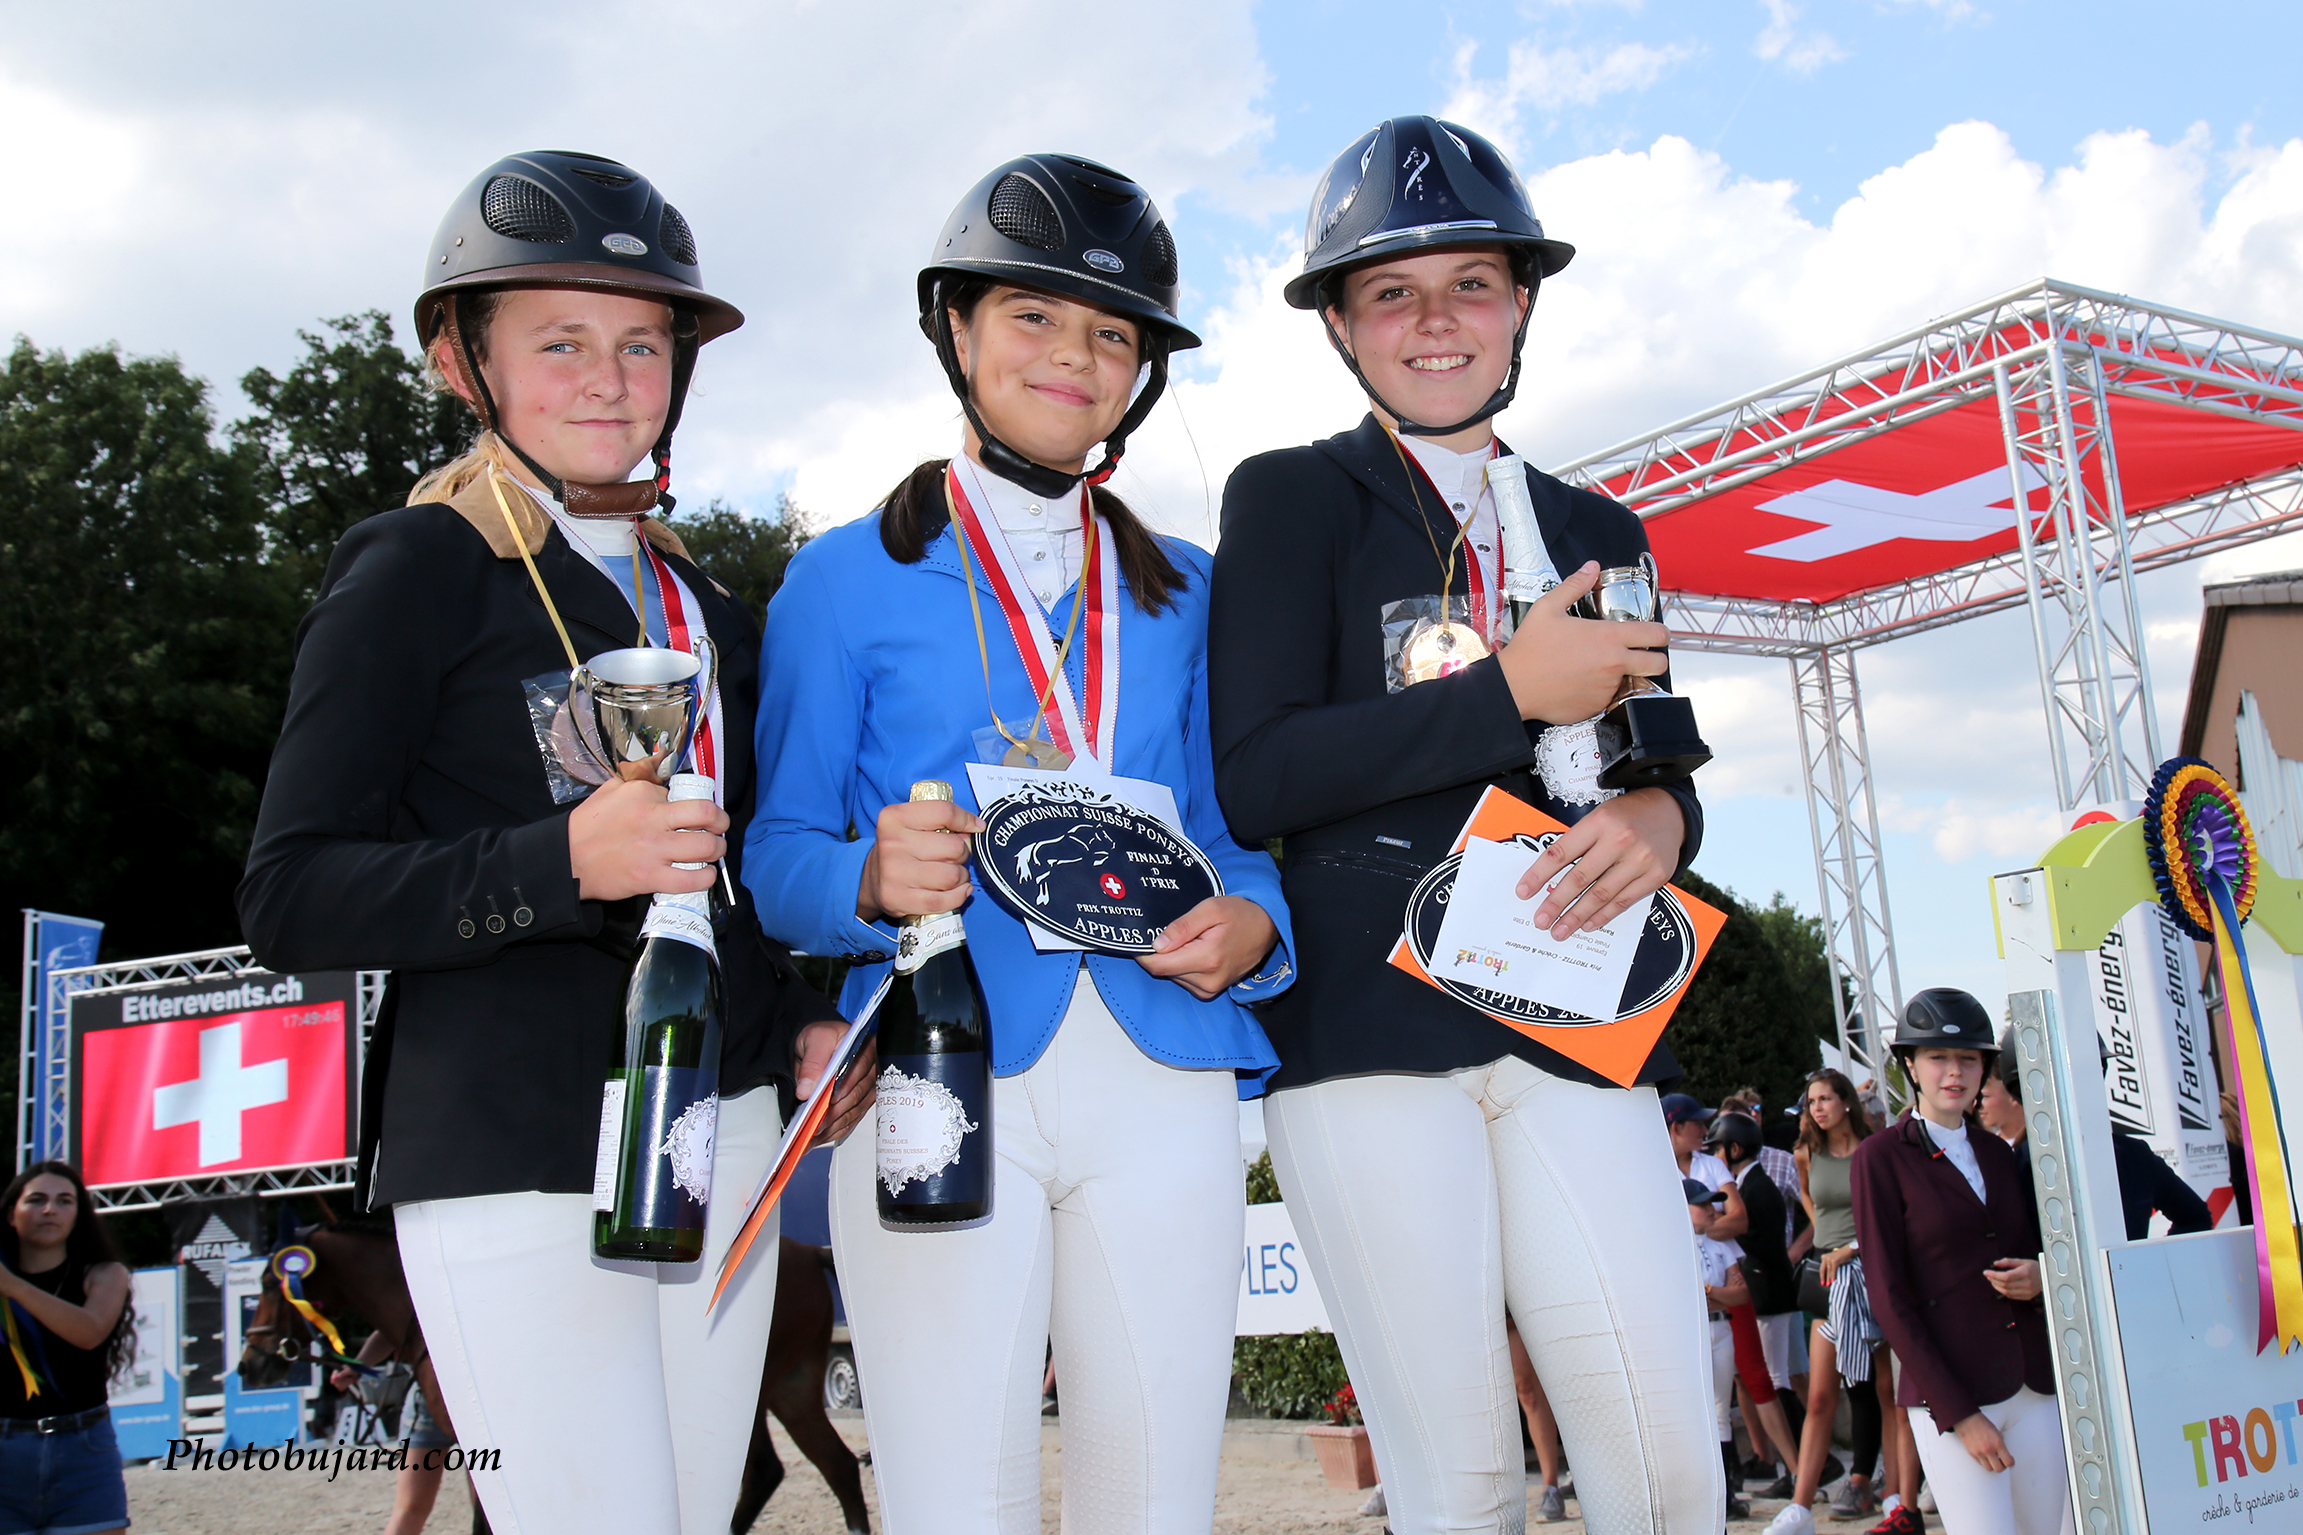 Championnats Suisses Poneys Apples 2019